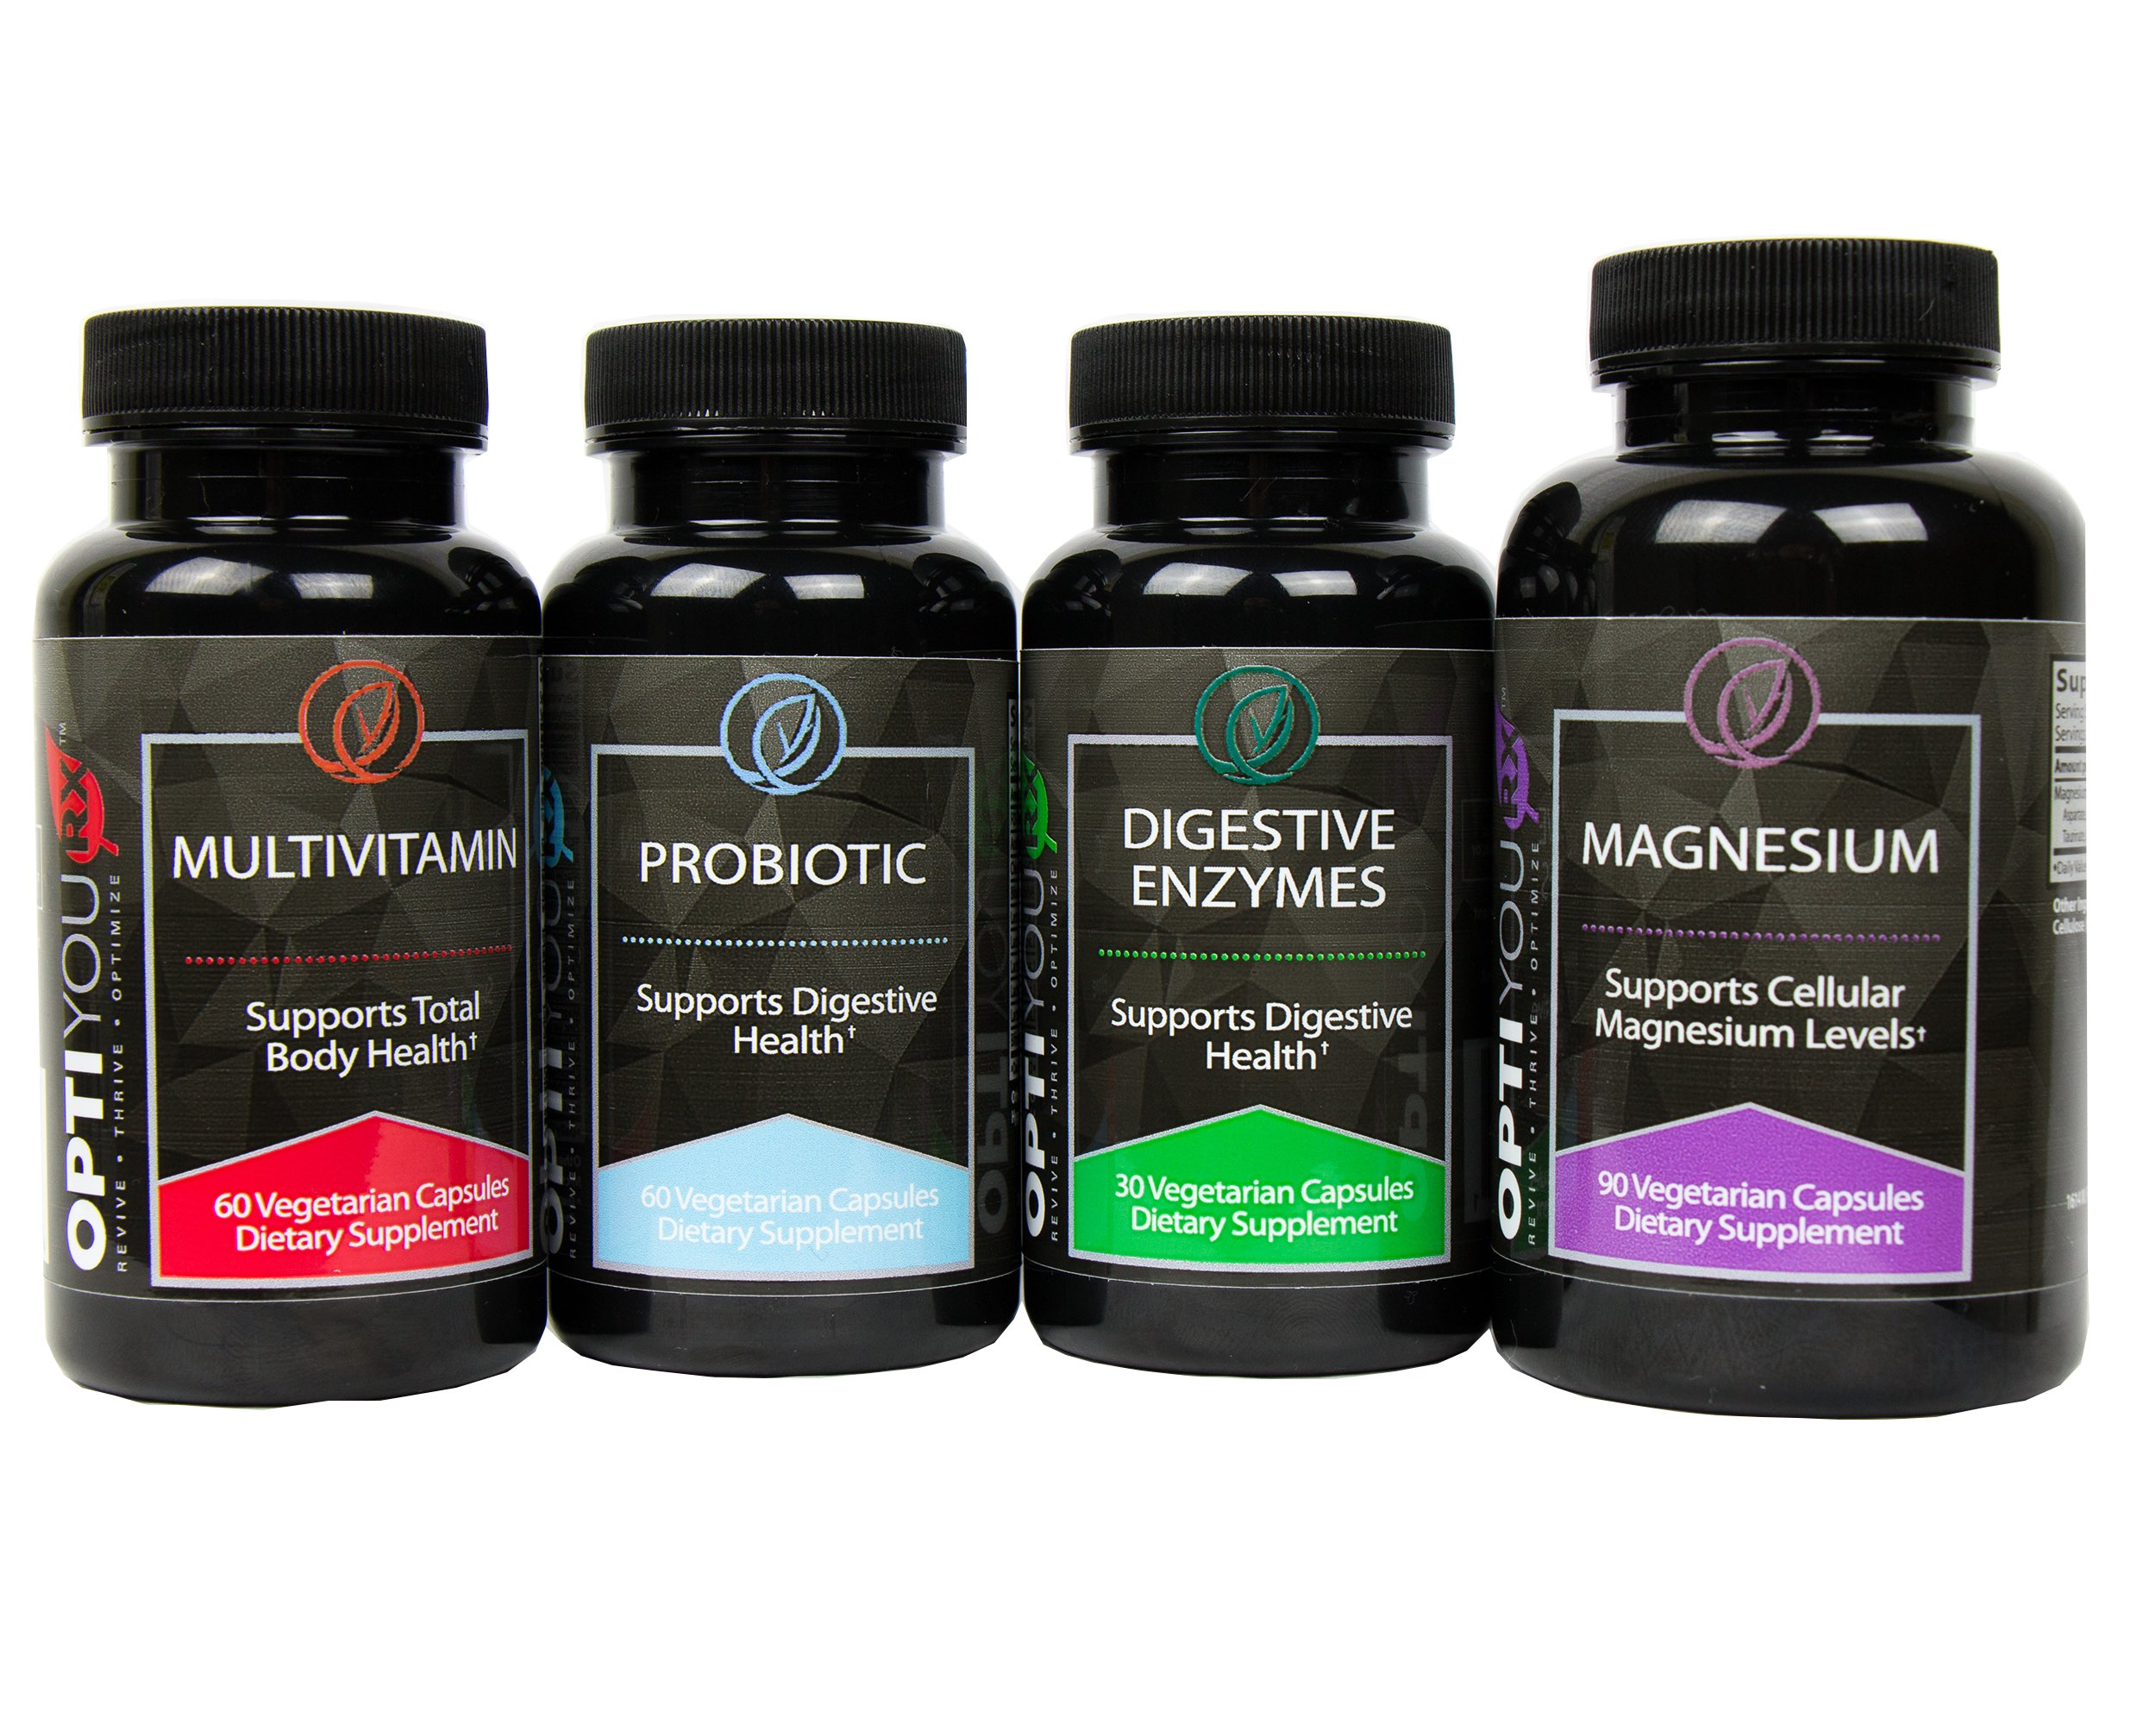 Check out our products - We sell high quality supplements, body measurement tests, weekend health summits and much more.